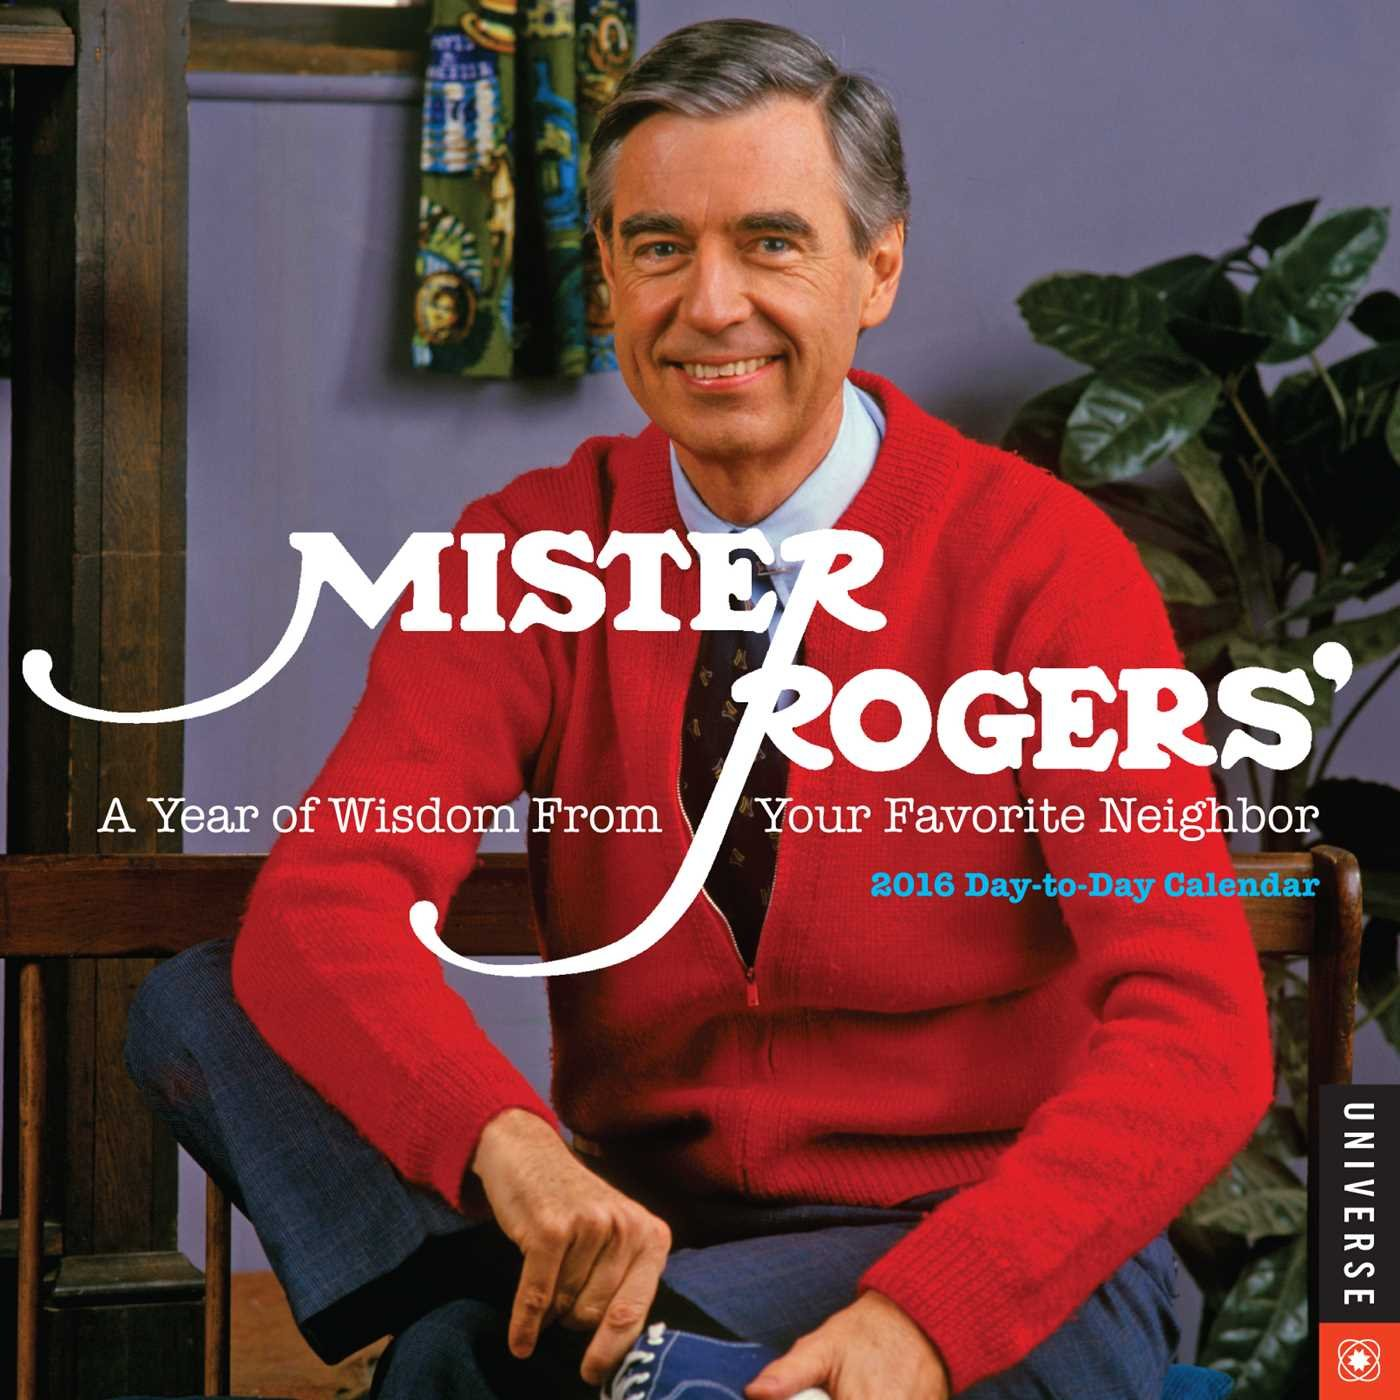 Mister Rogers 2016 Day To Day Calendar A Year Of Wisdom From Your Favorite Neighbor Rogers Fred 9780789330253 Books Amazon Ca